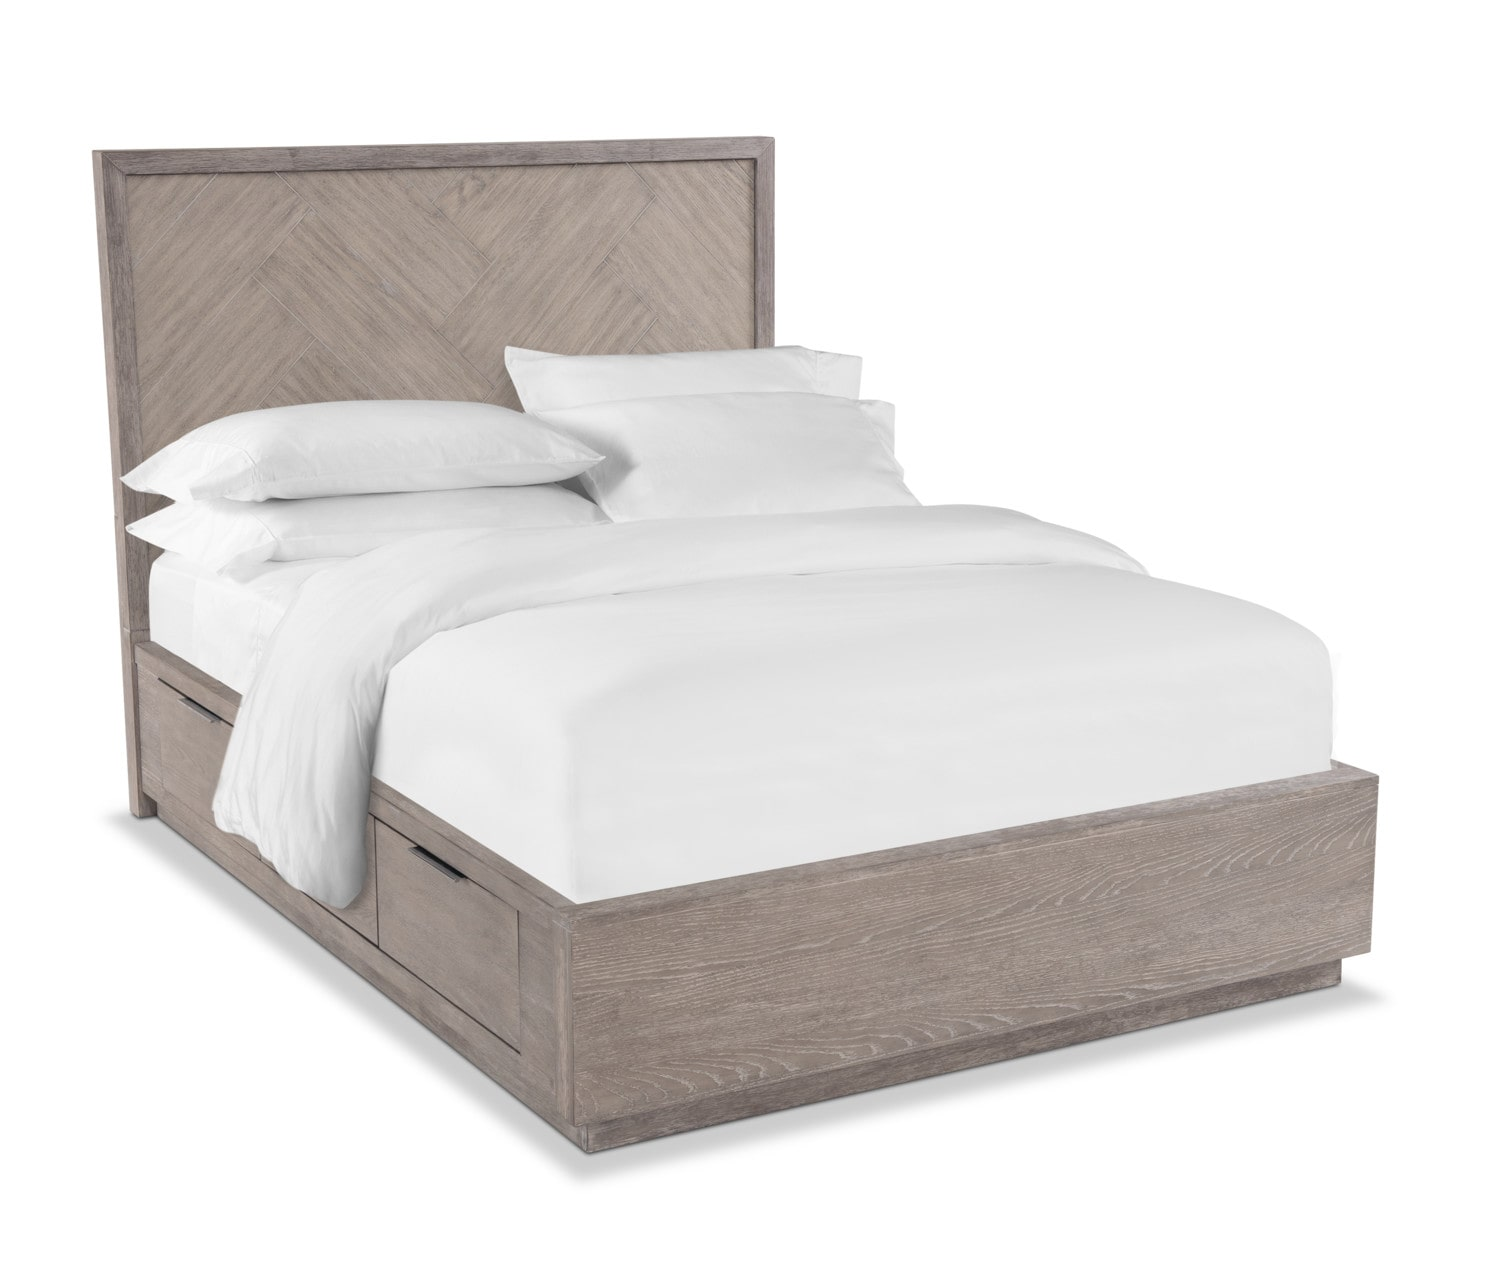 Bedroom Furniture - Zen Storage Bed